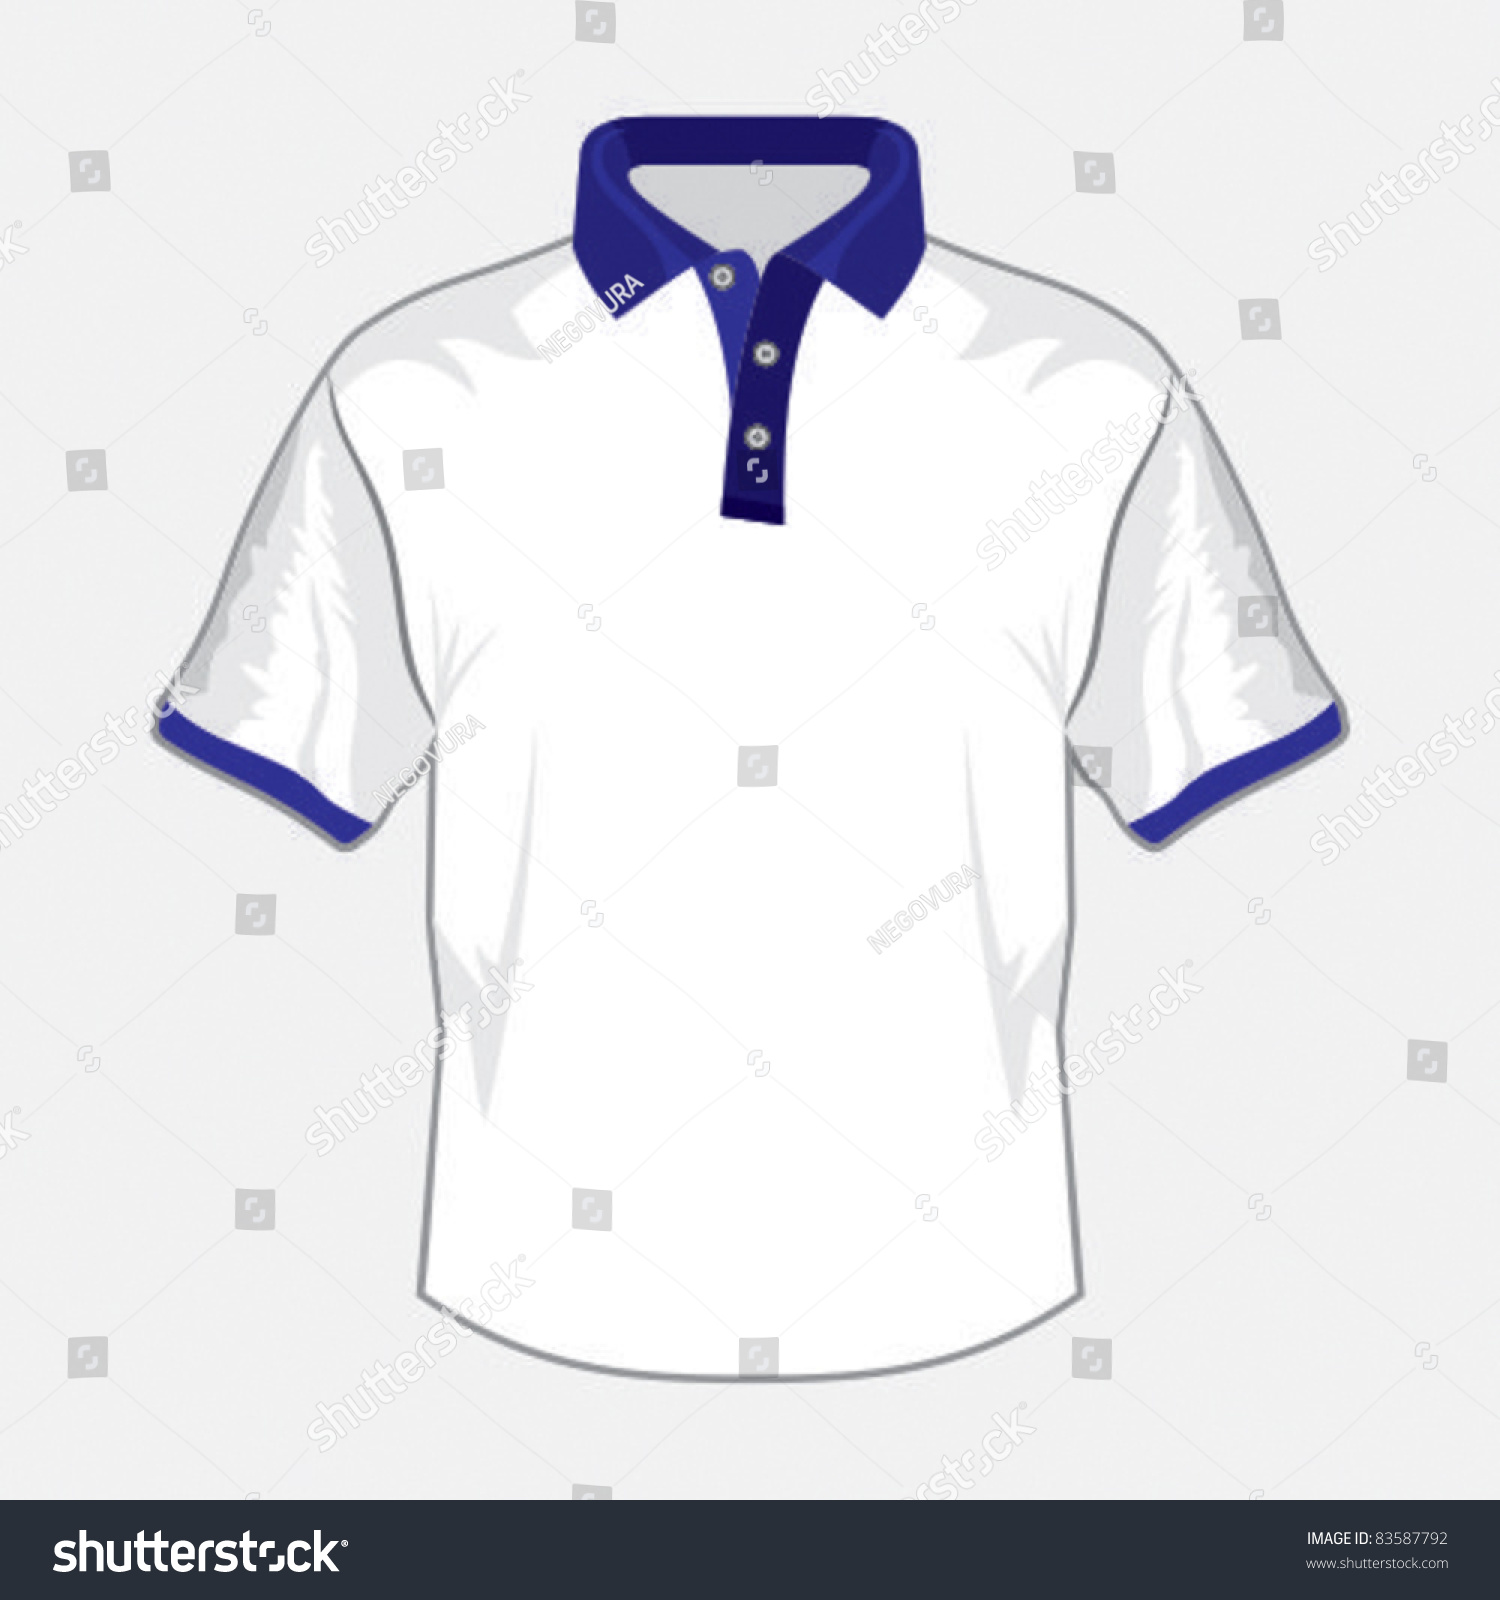 white polo shirt design with dark blue collar stock vector